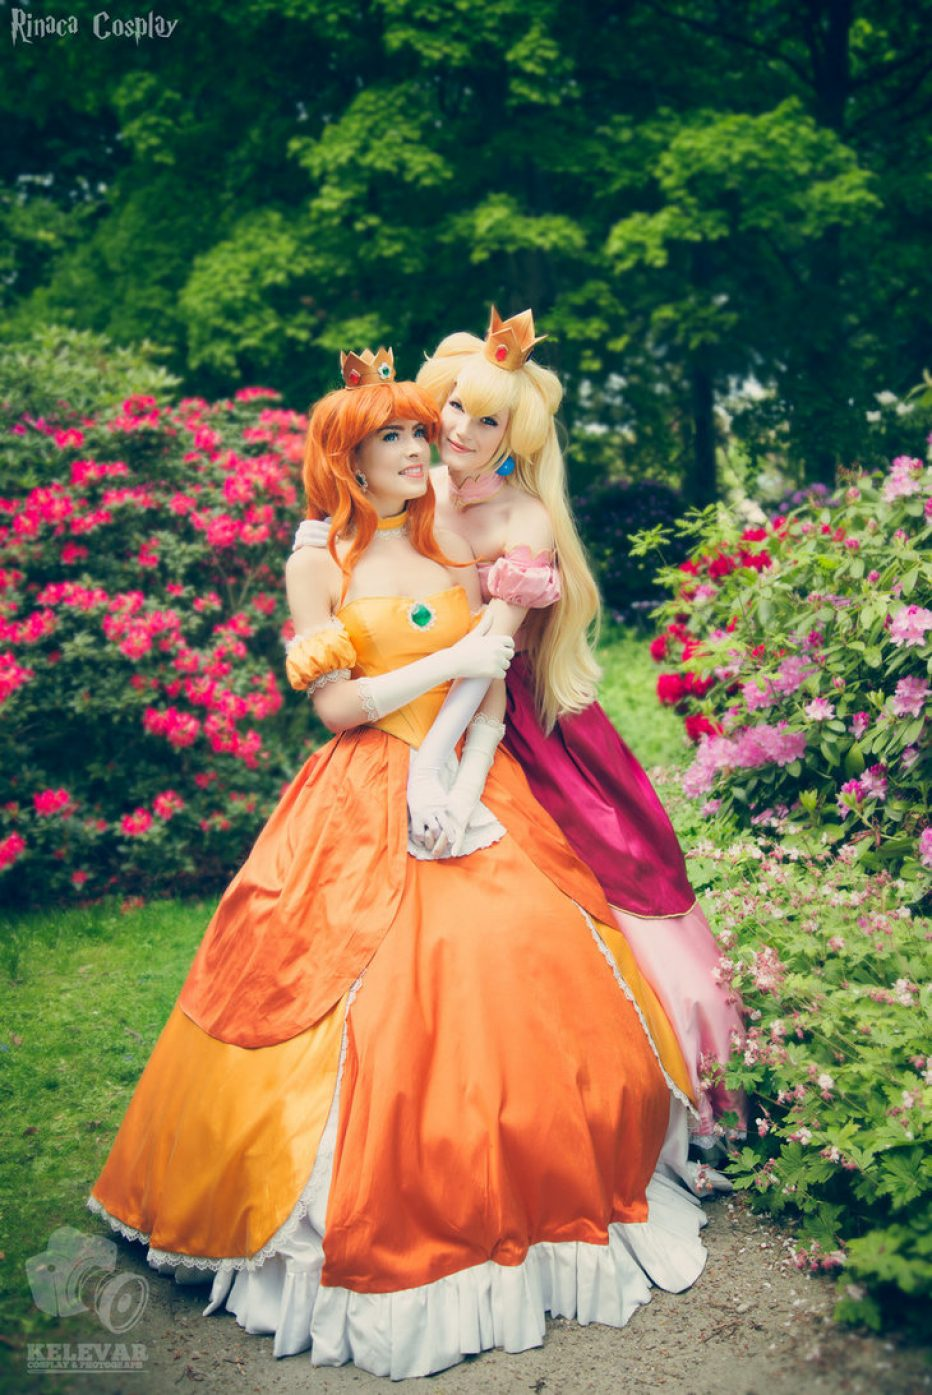 Princess-Daisy-Cosplay-Gamers-Heroes-1.jpg